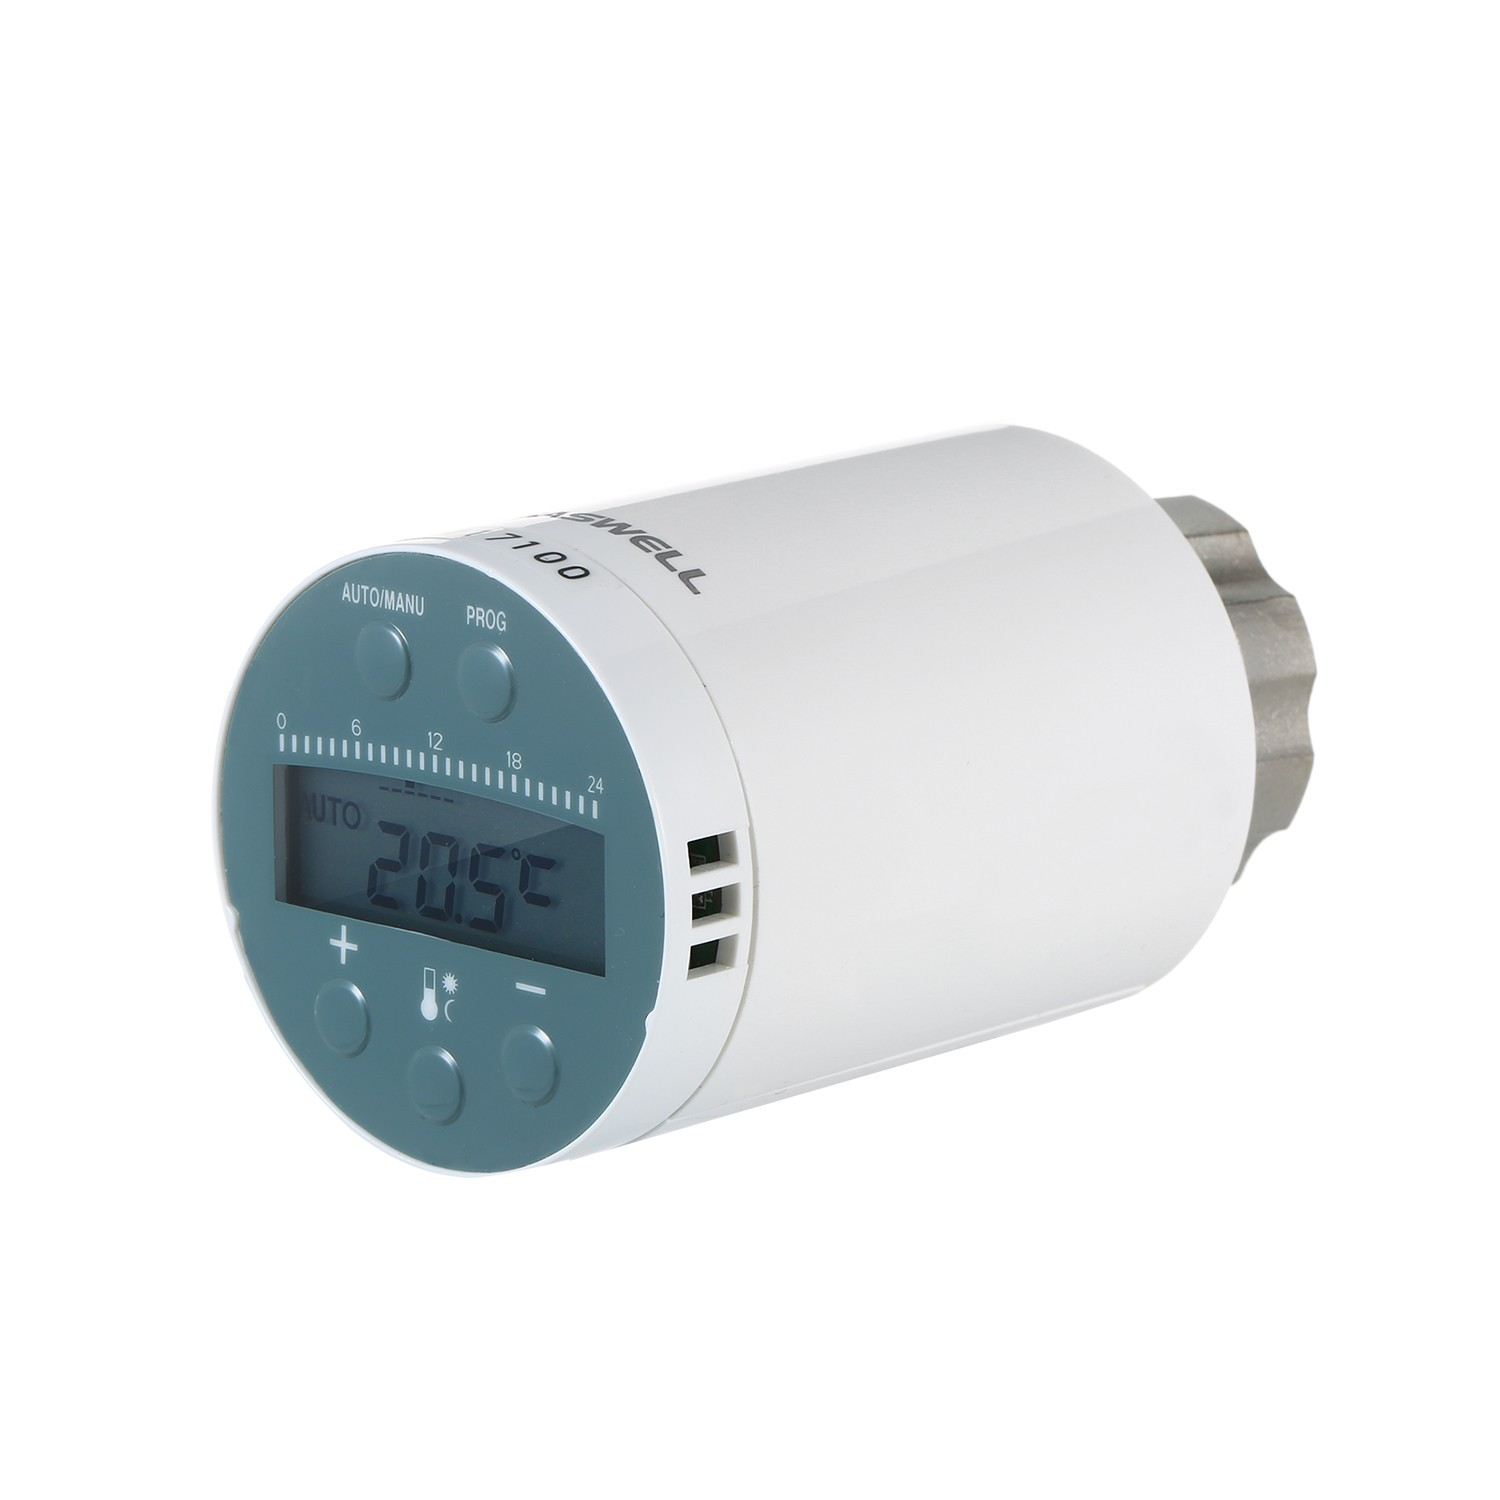 tomtop.com - 37% OFF SEA801-ZIGBEE Smart Heating Radiator Thermostat, Limited Offers $24.99